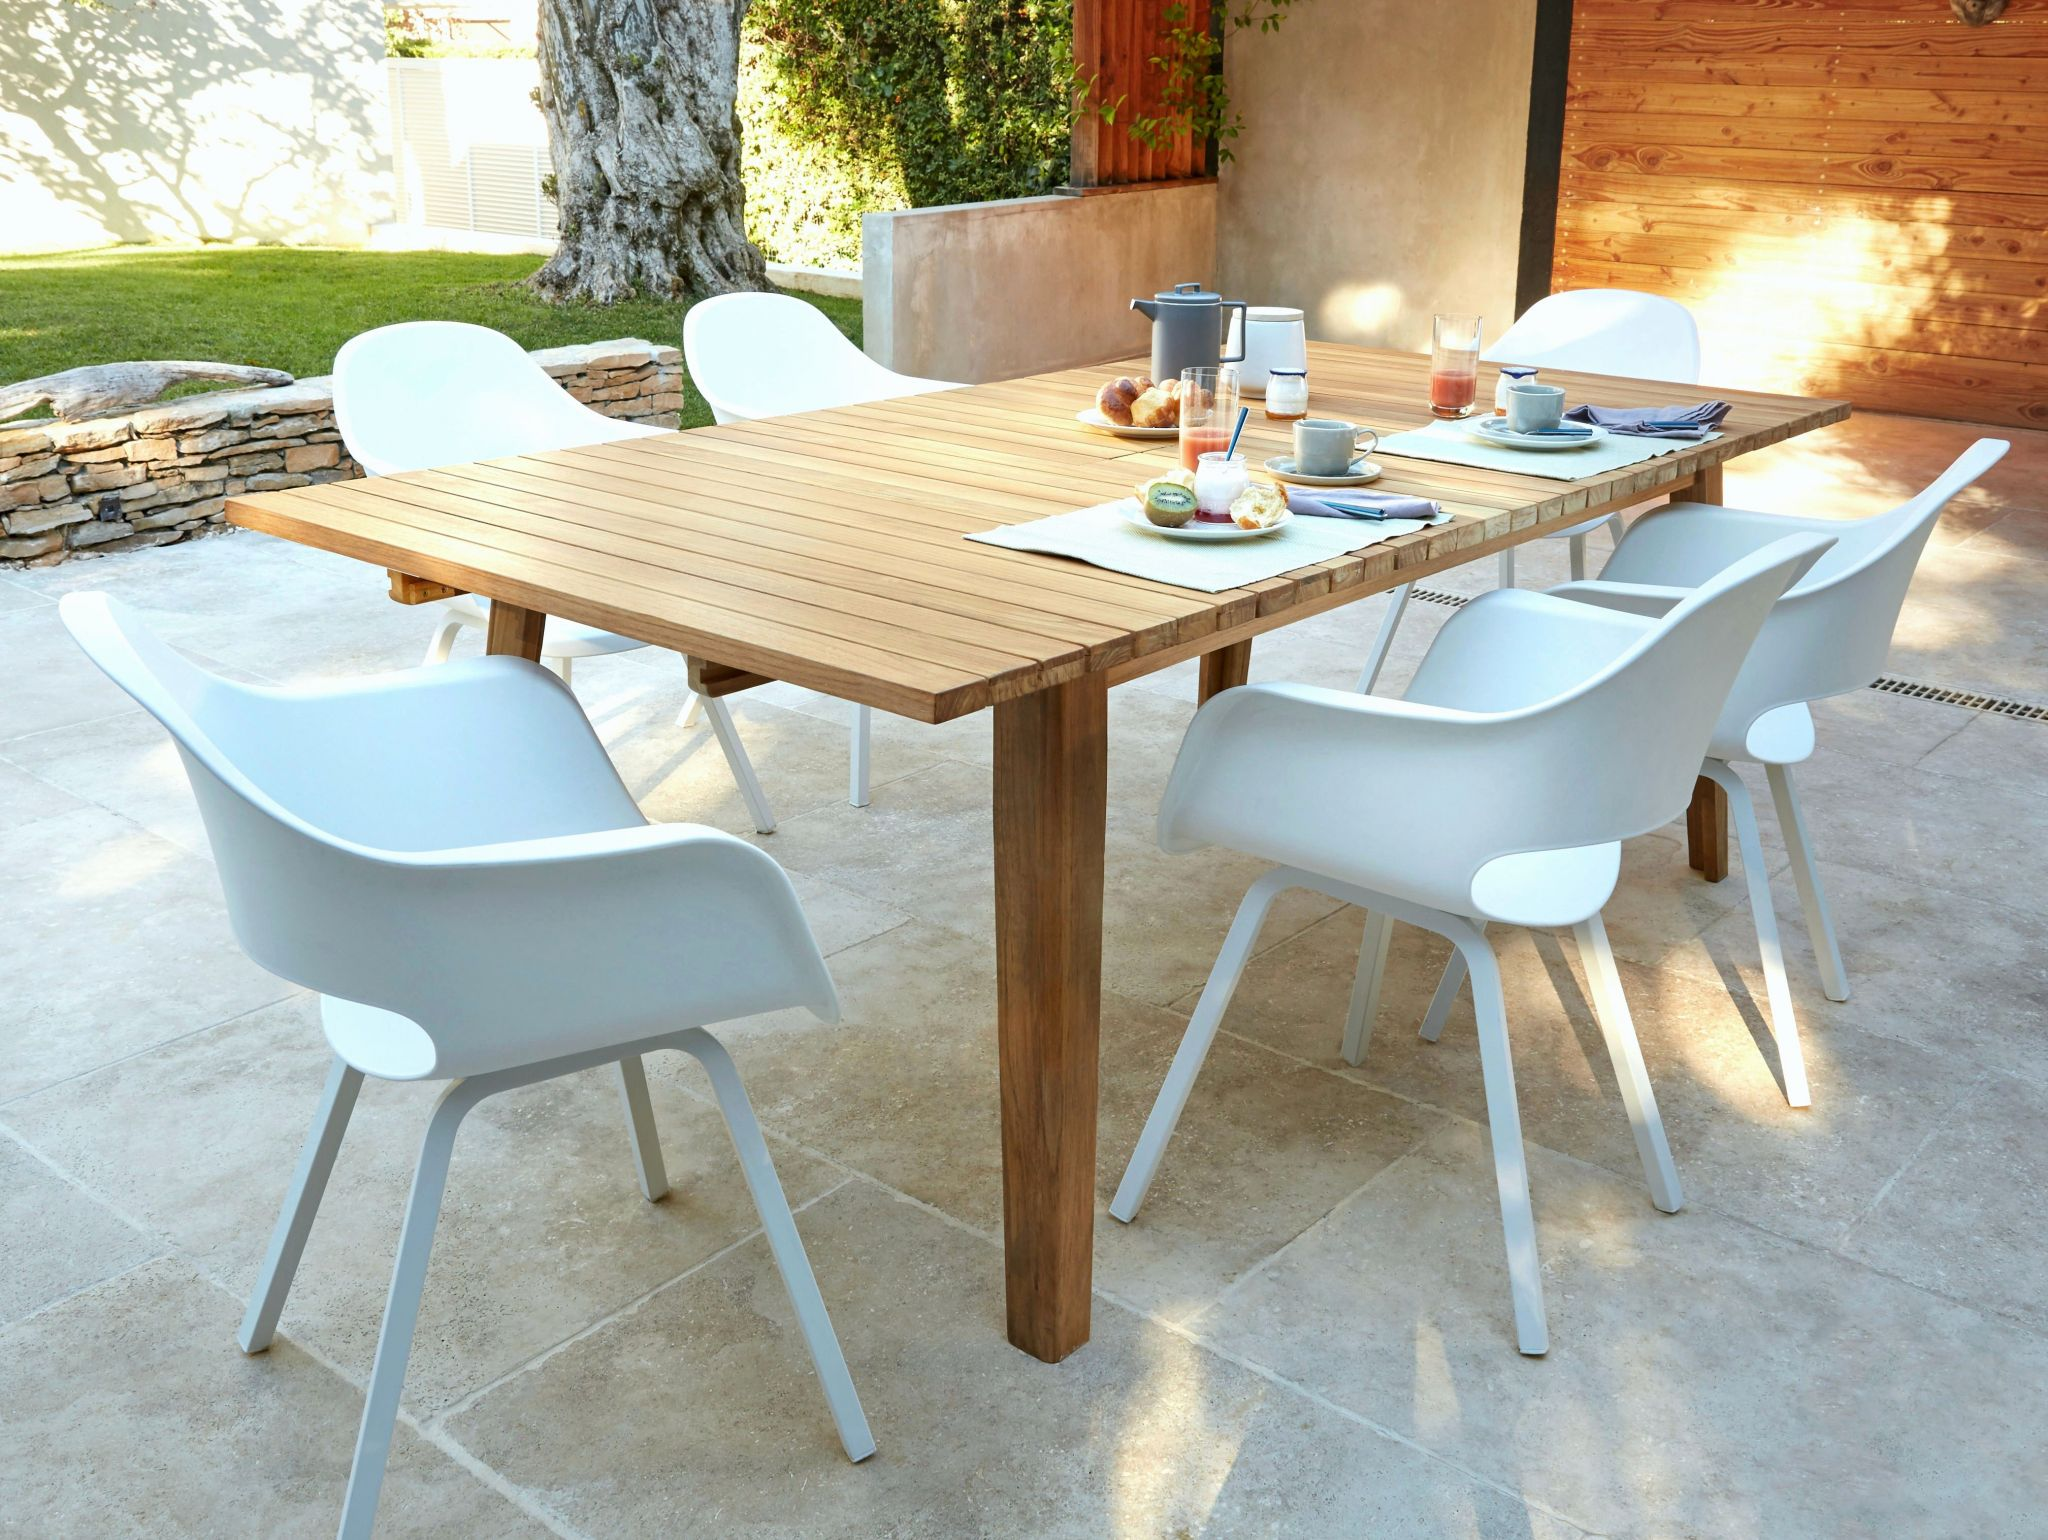 table et chaise de jardin ou table et chaise de terrasse tables de jardin table jardin extensible de table et chaise de jardin